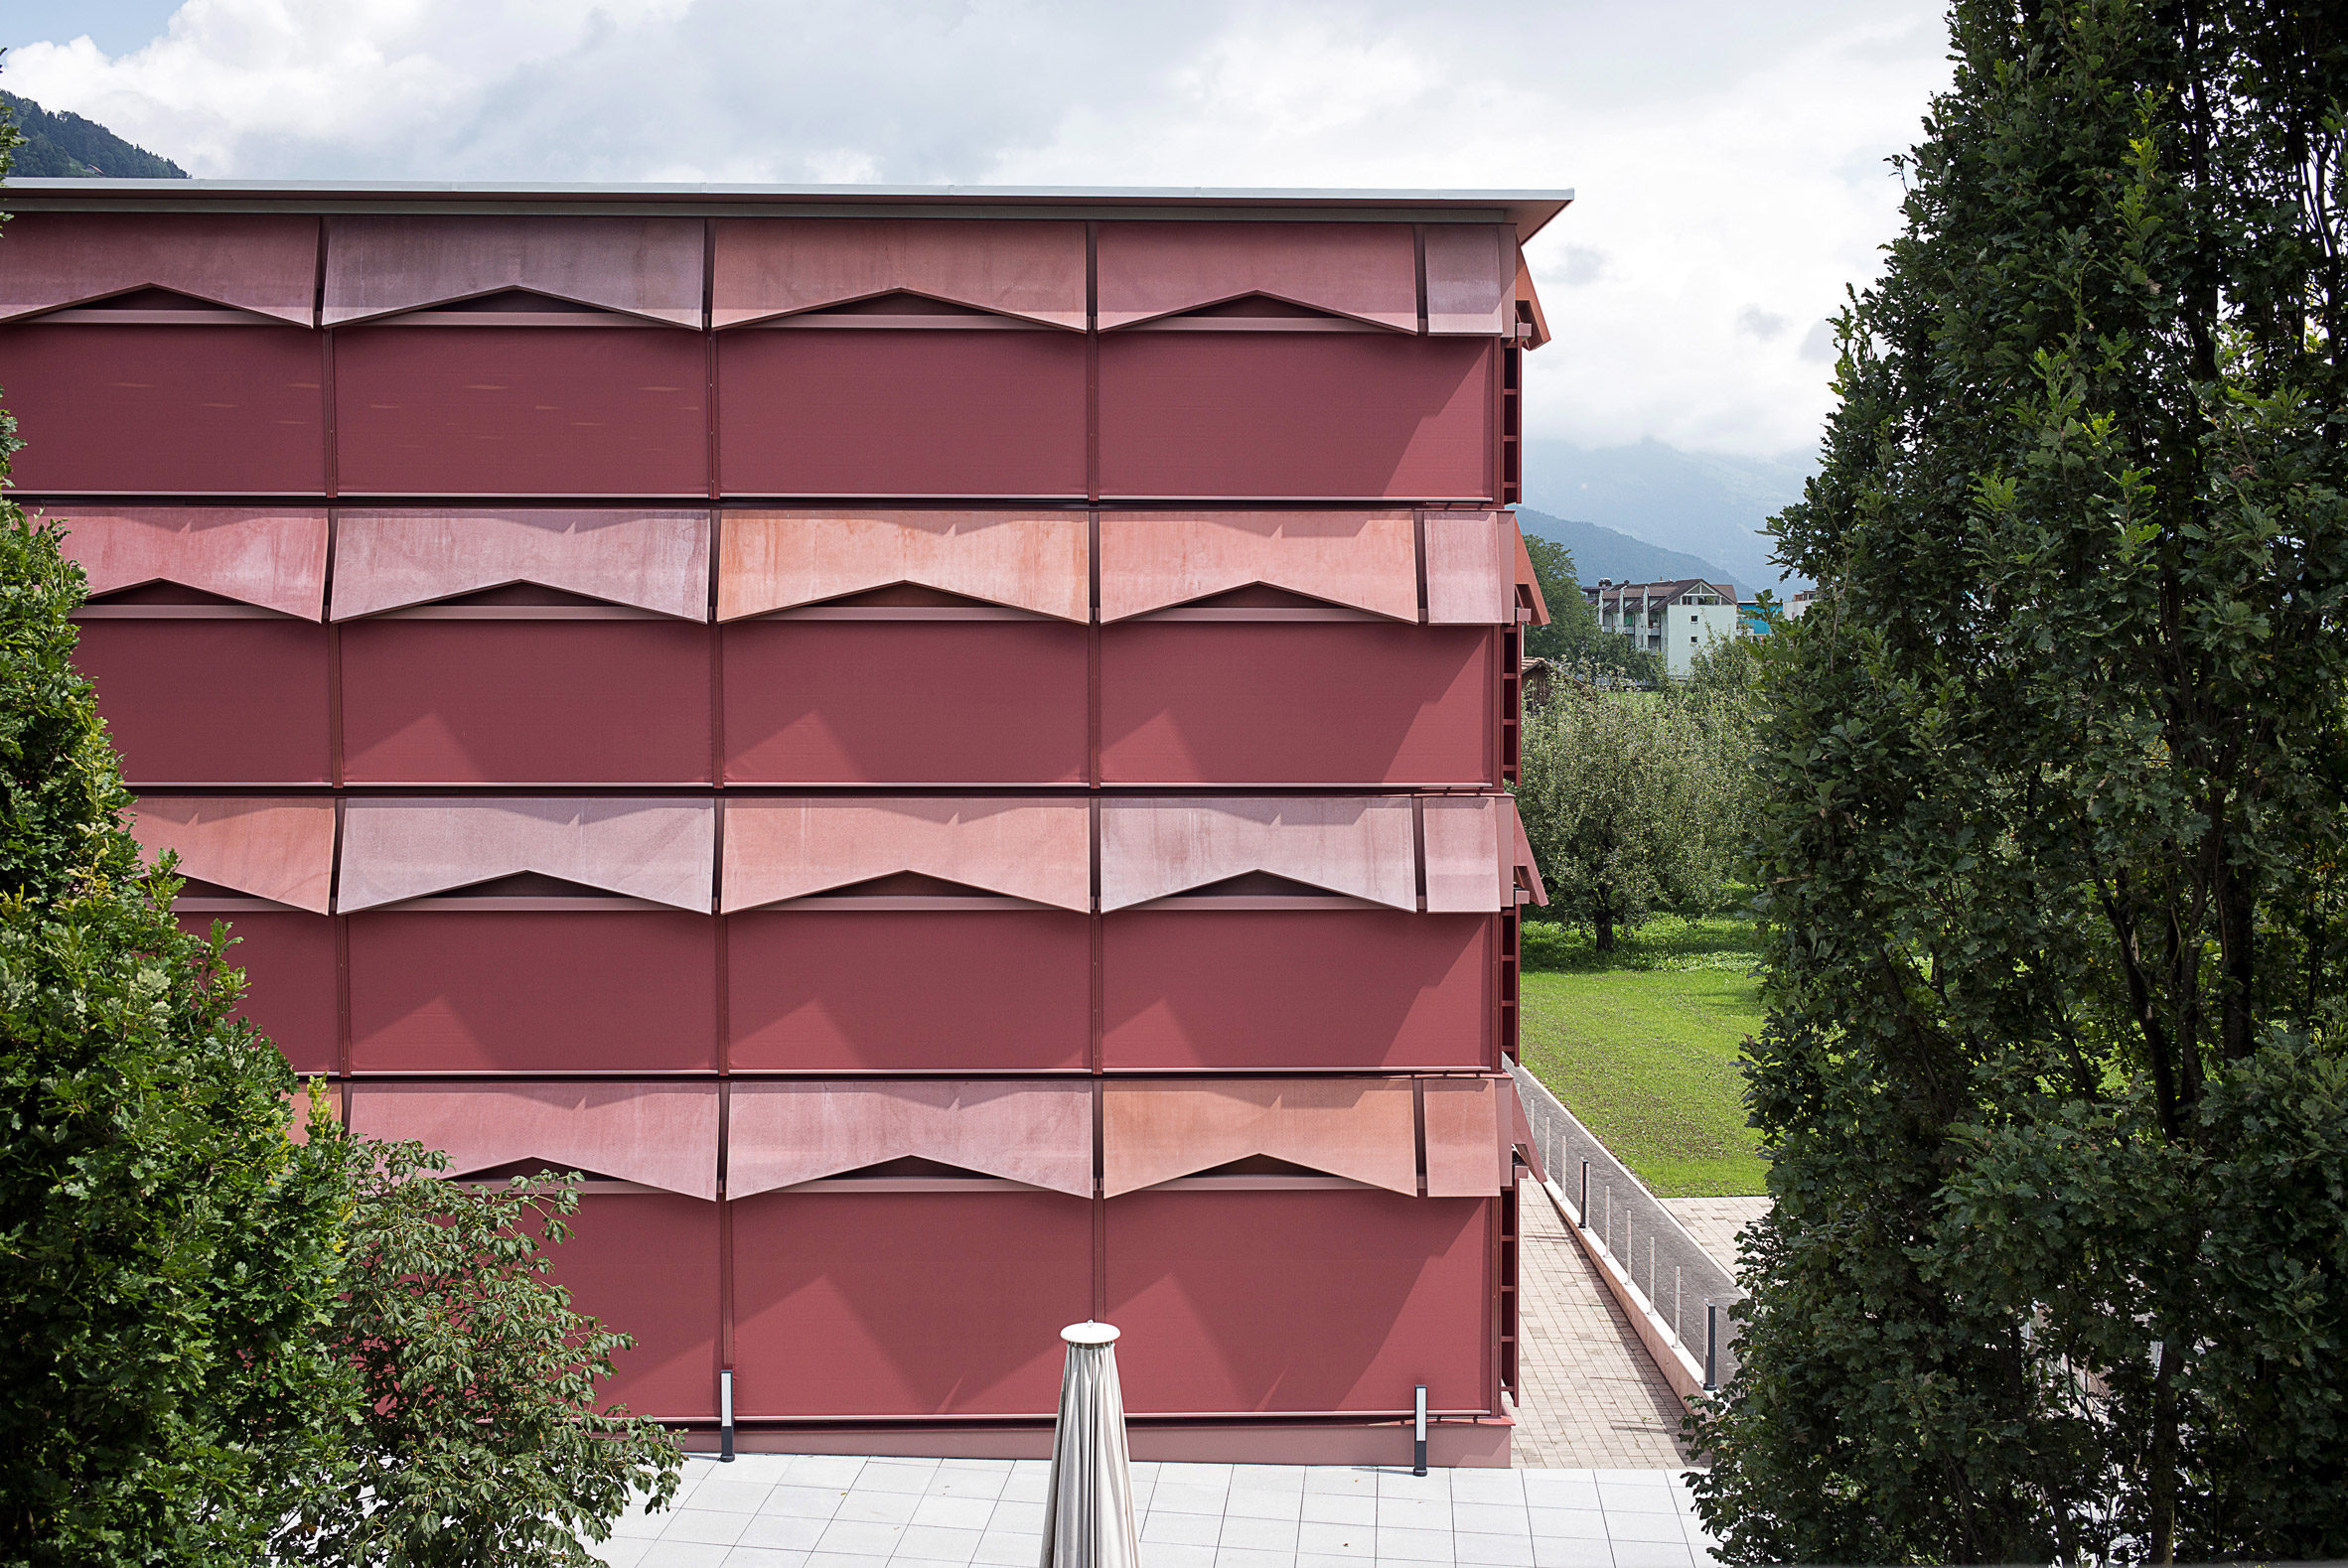 Disability support centre by Architekten CM features tinted concrete ramps and retractable awnings